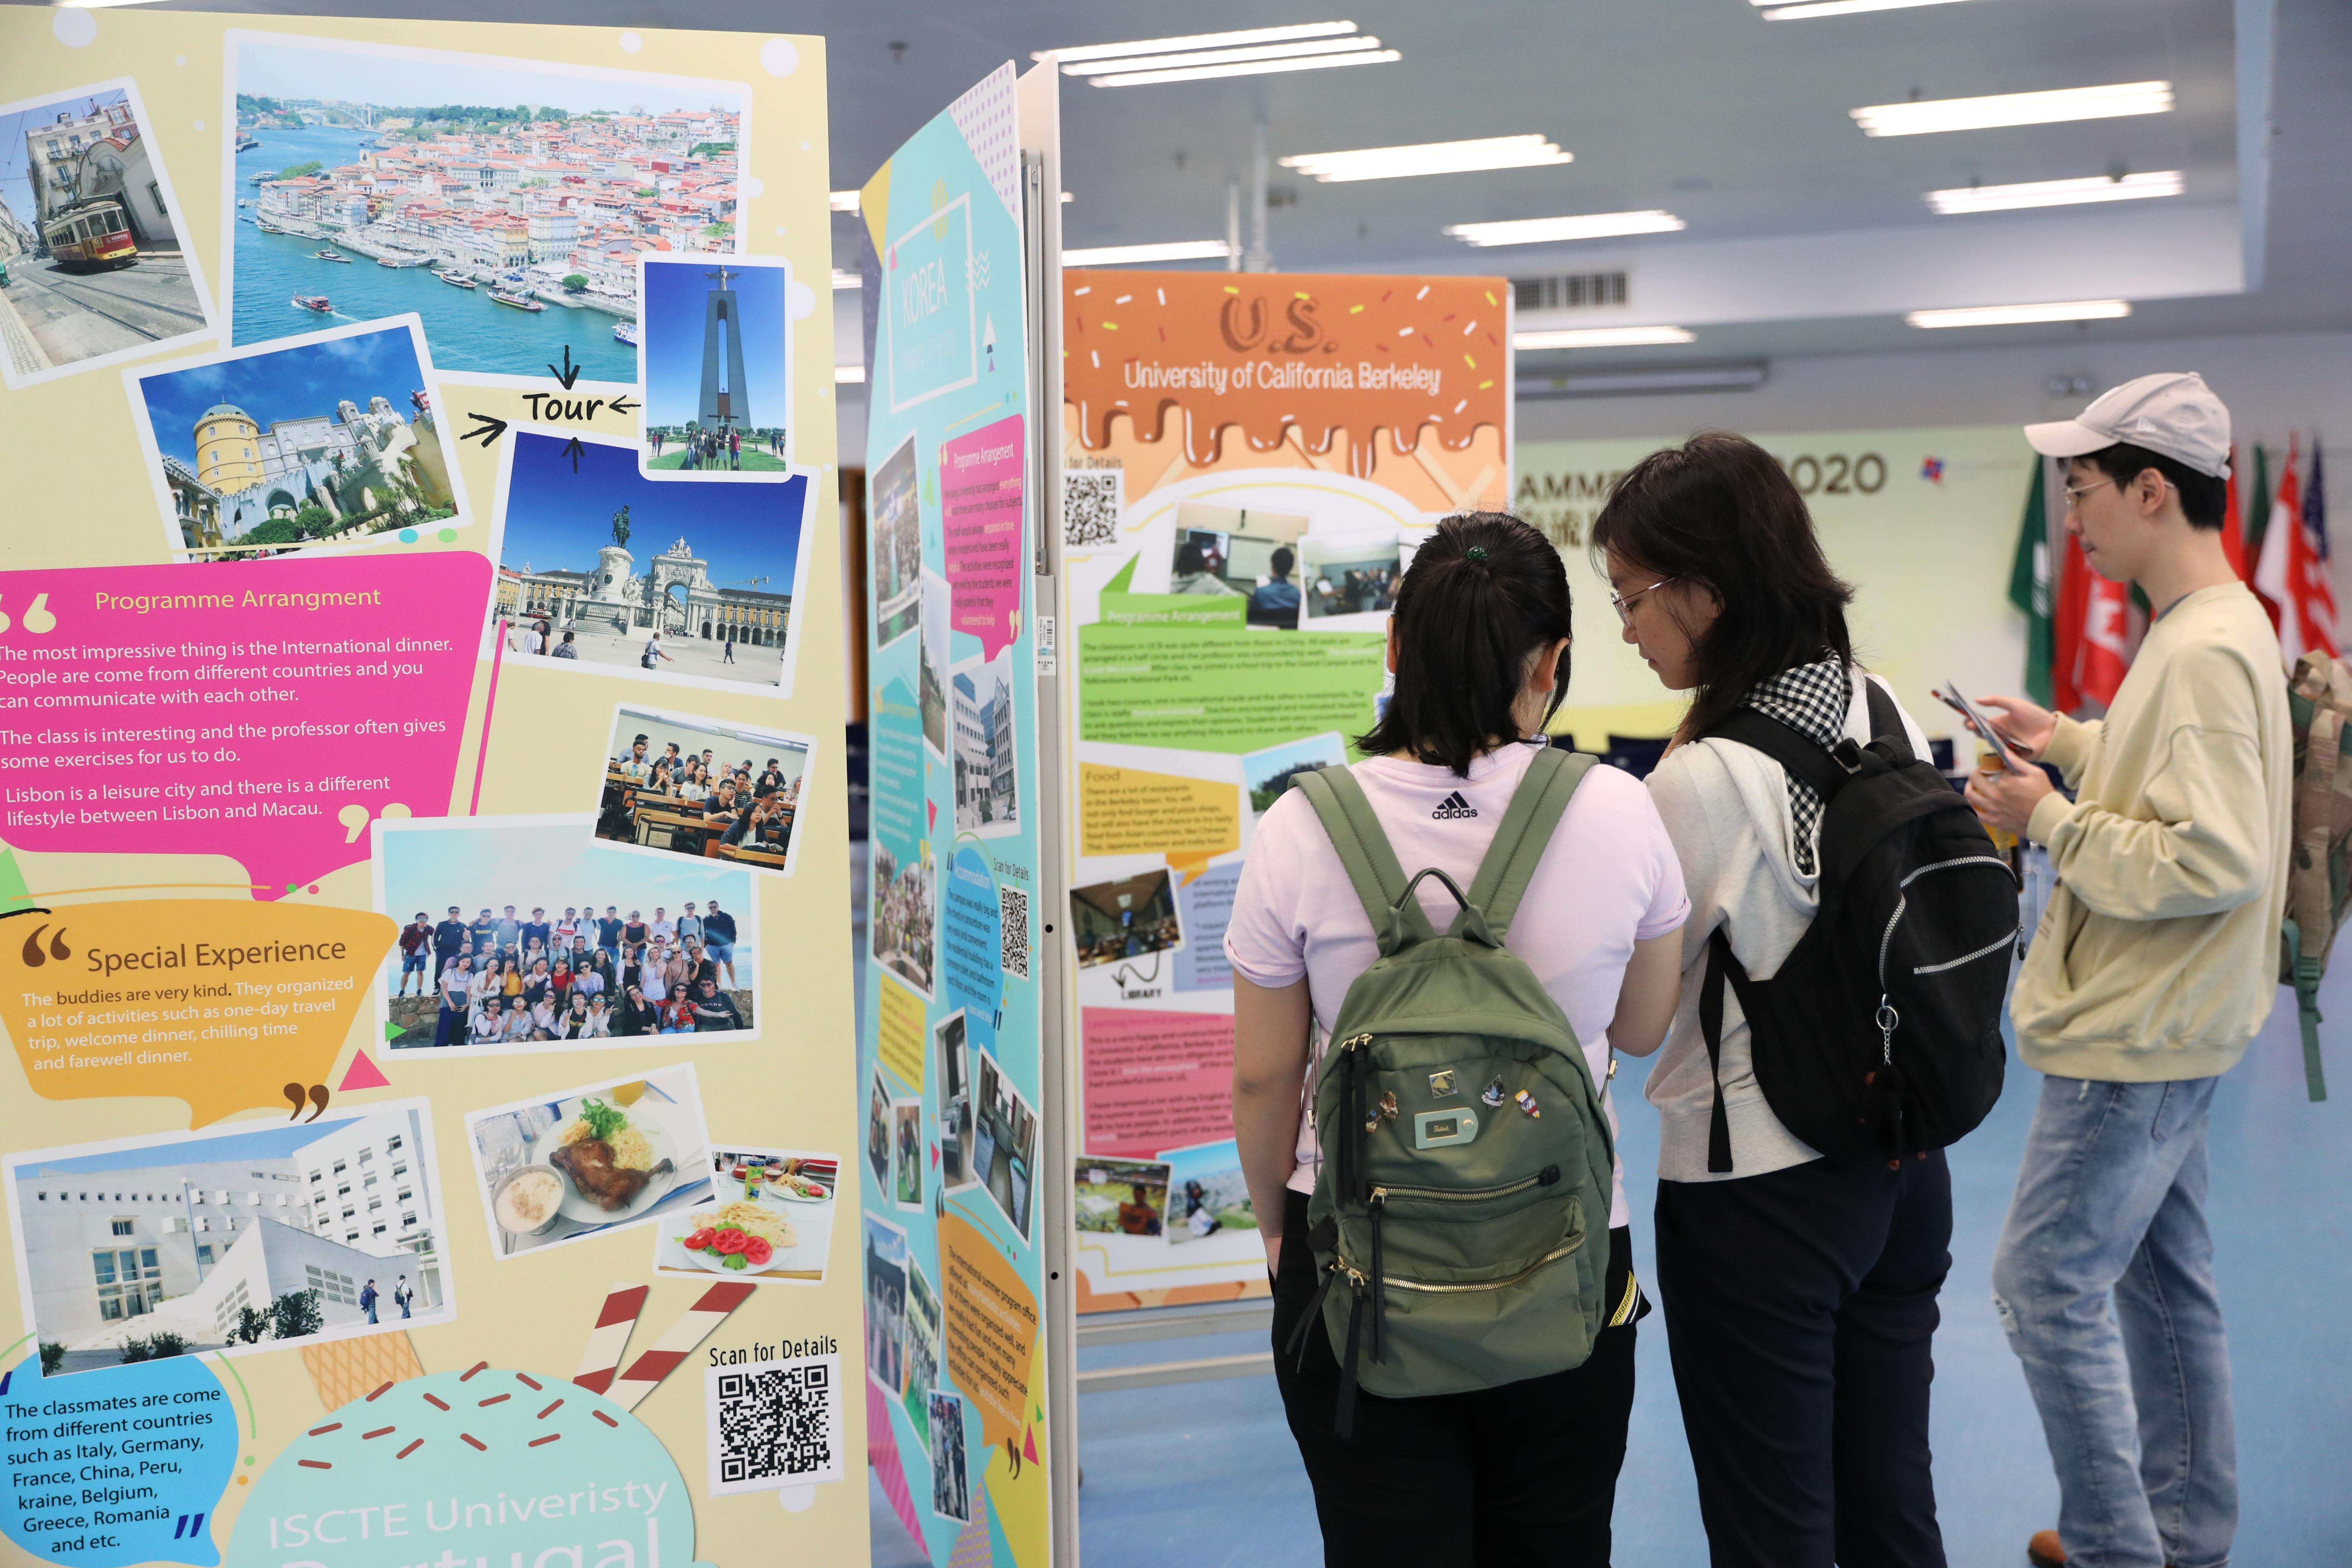 UM's Summer Programme Fair 2020 attracts many students